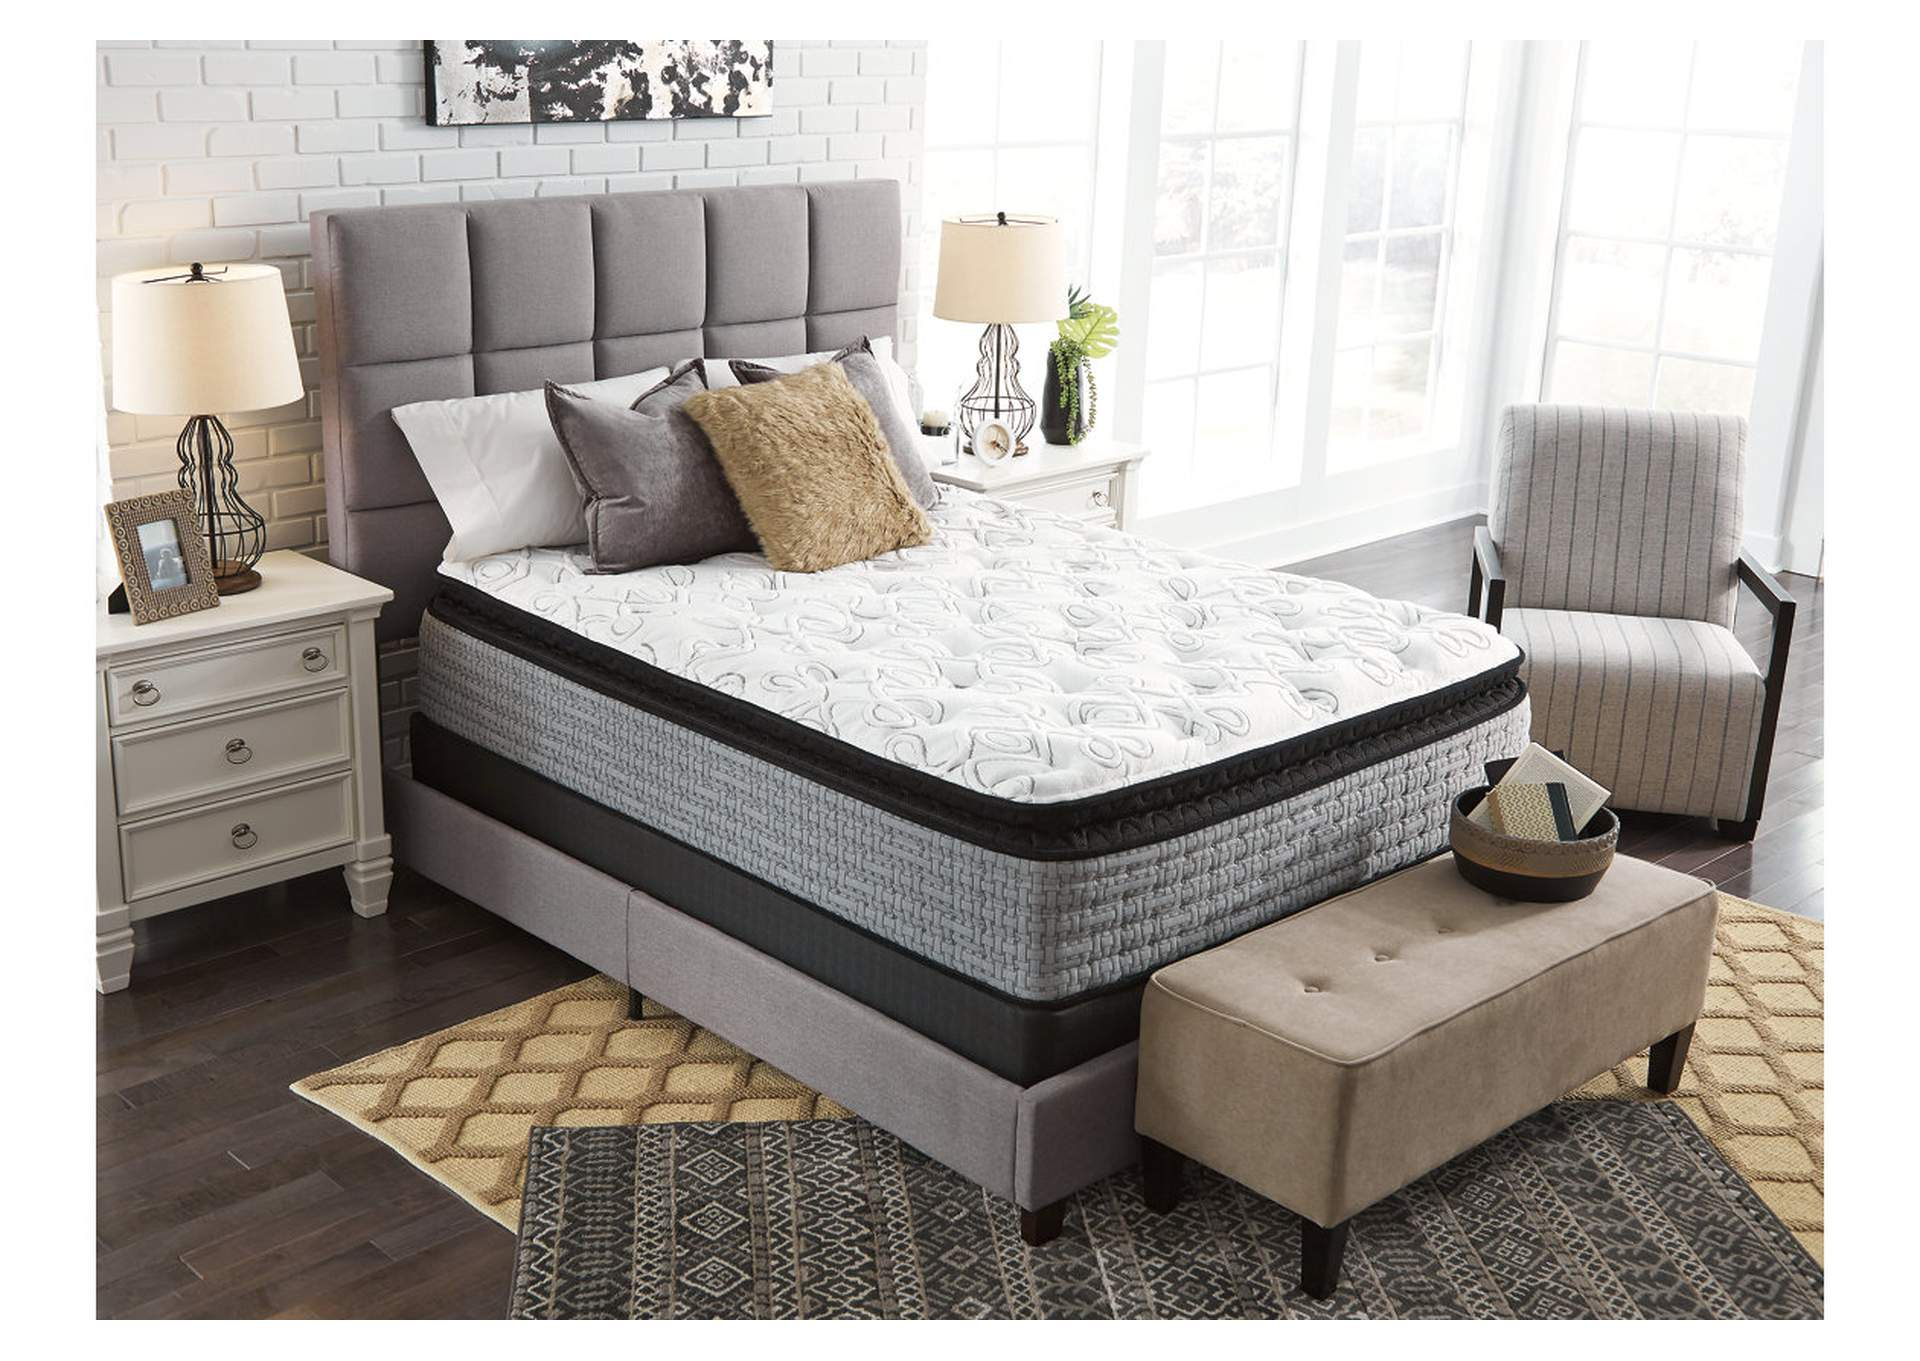 Mt Rogers Ltd Pillowtop King Mattress,Sierra Sleep by Ashley